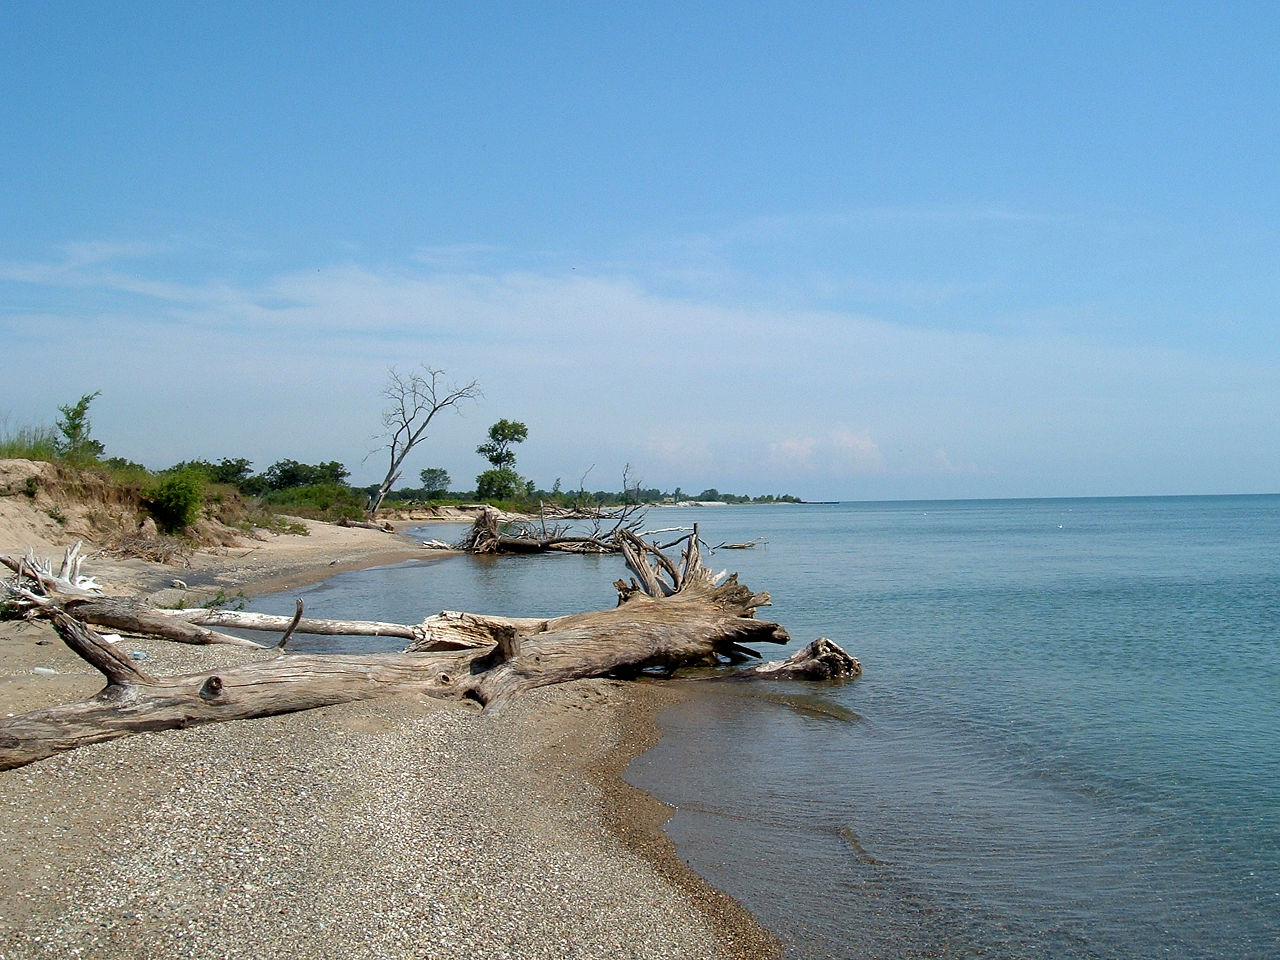 Illinois Beach State Park lakefront. Photo by Wrongdave / Wikimedia